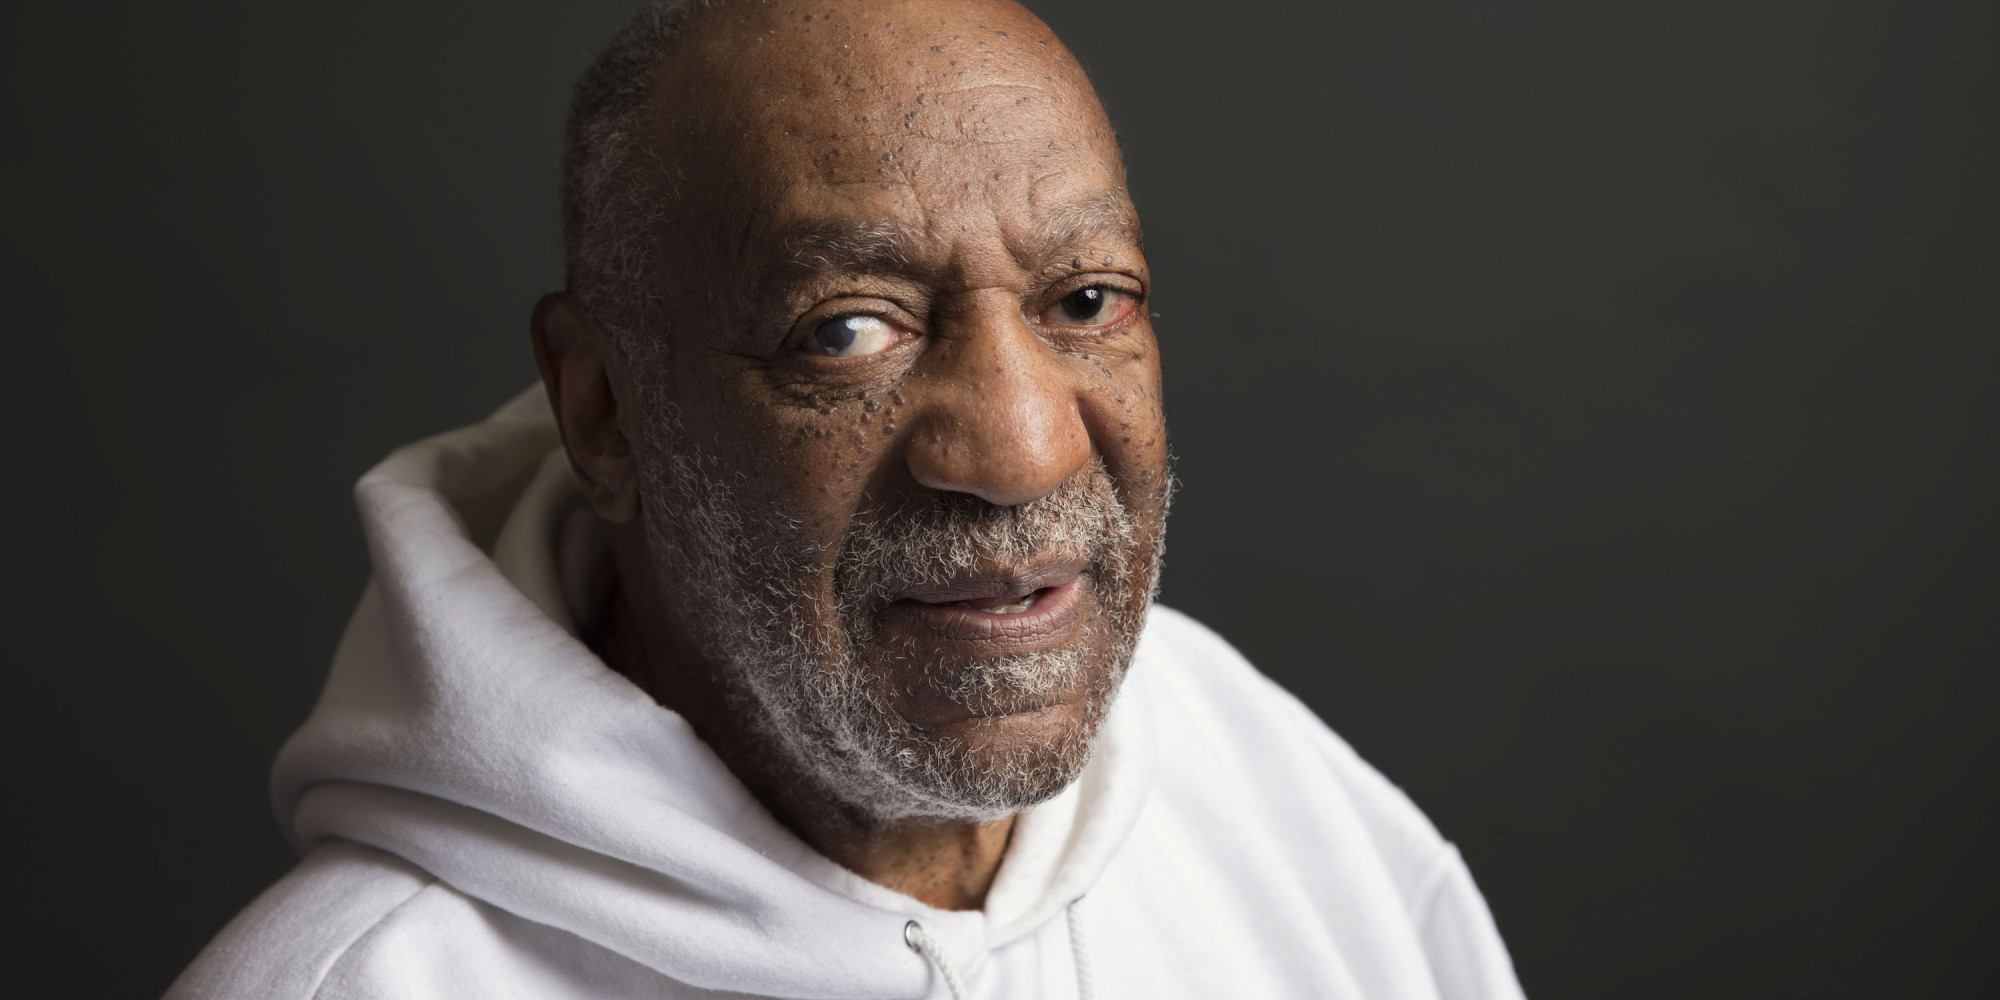 Bill Cosby's Lawyer Issues Statement On Sexual Assault Allegations